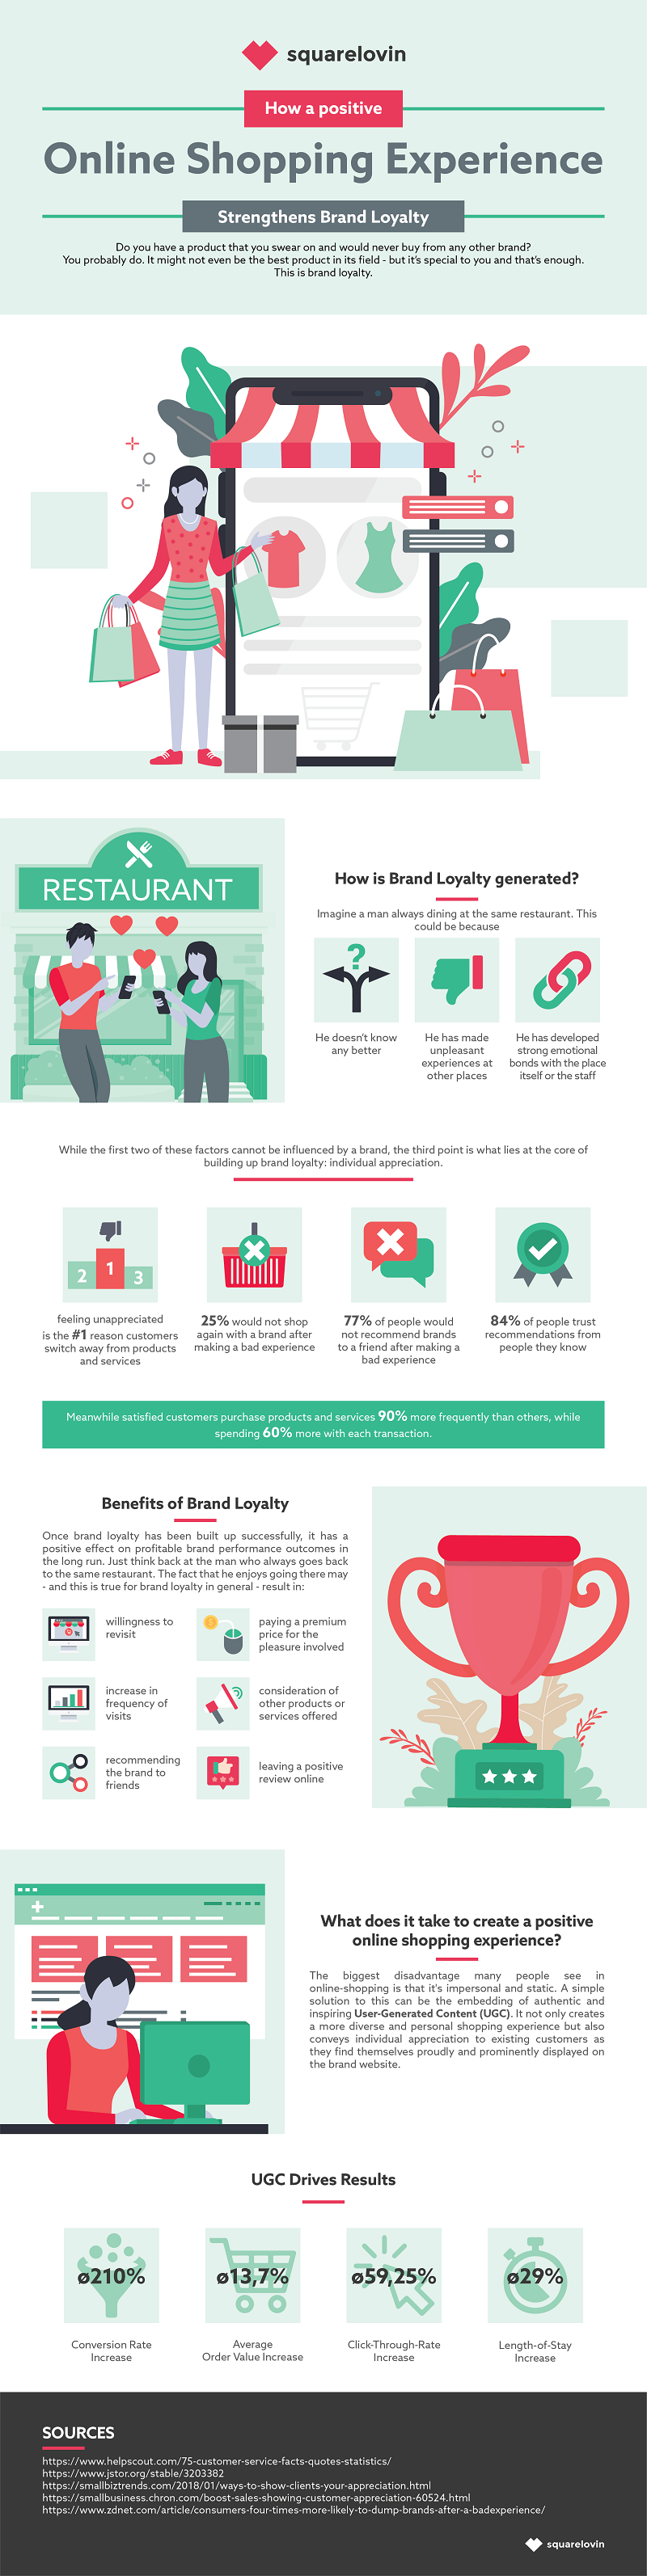 Infographic looks at how to promote brand loyalty